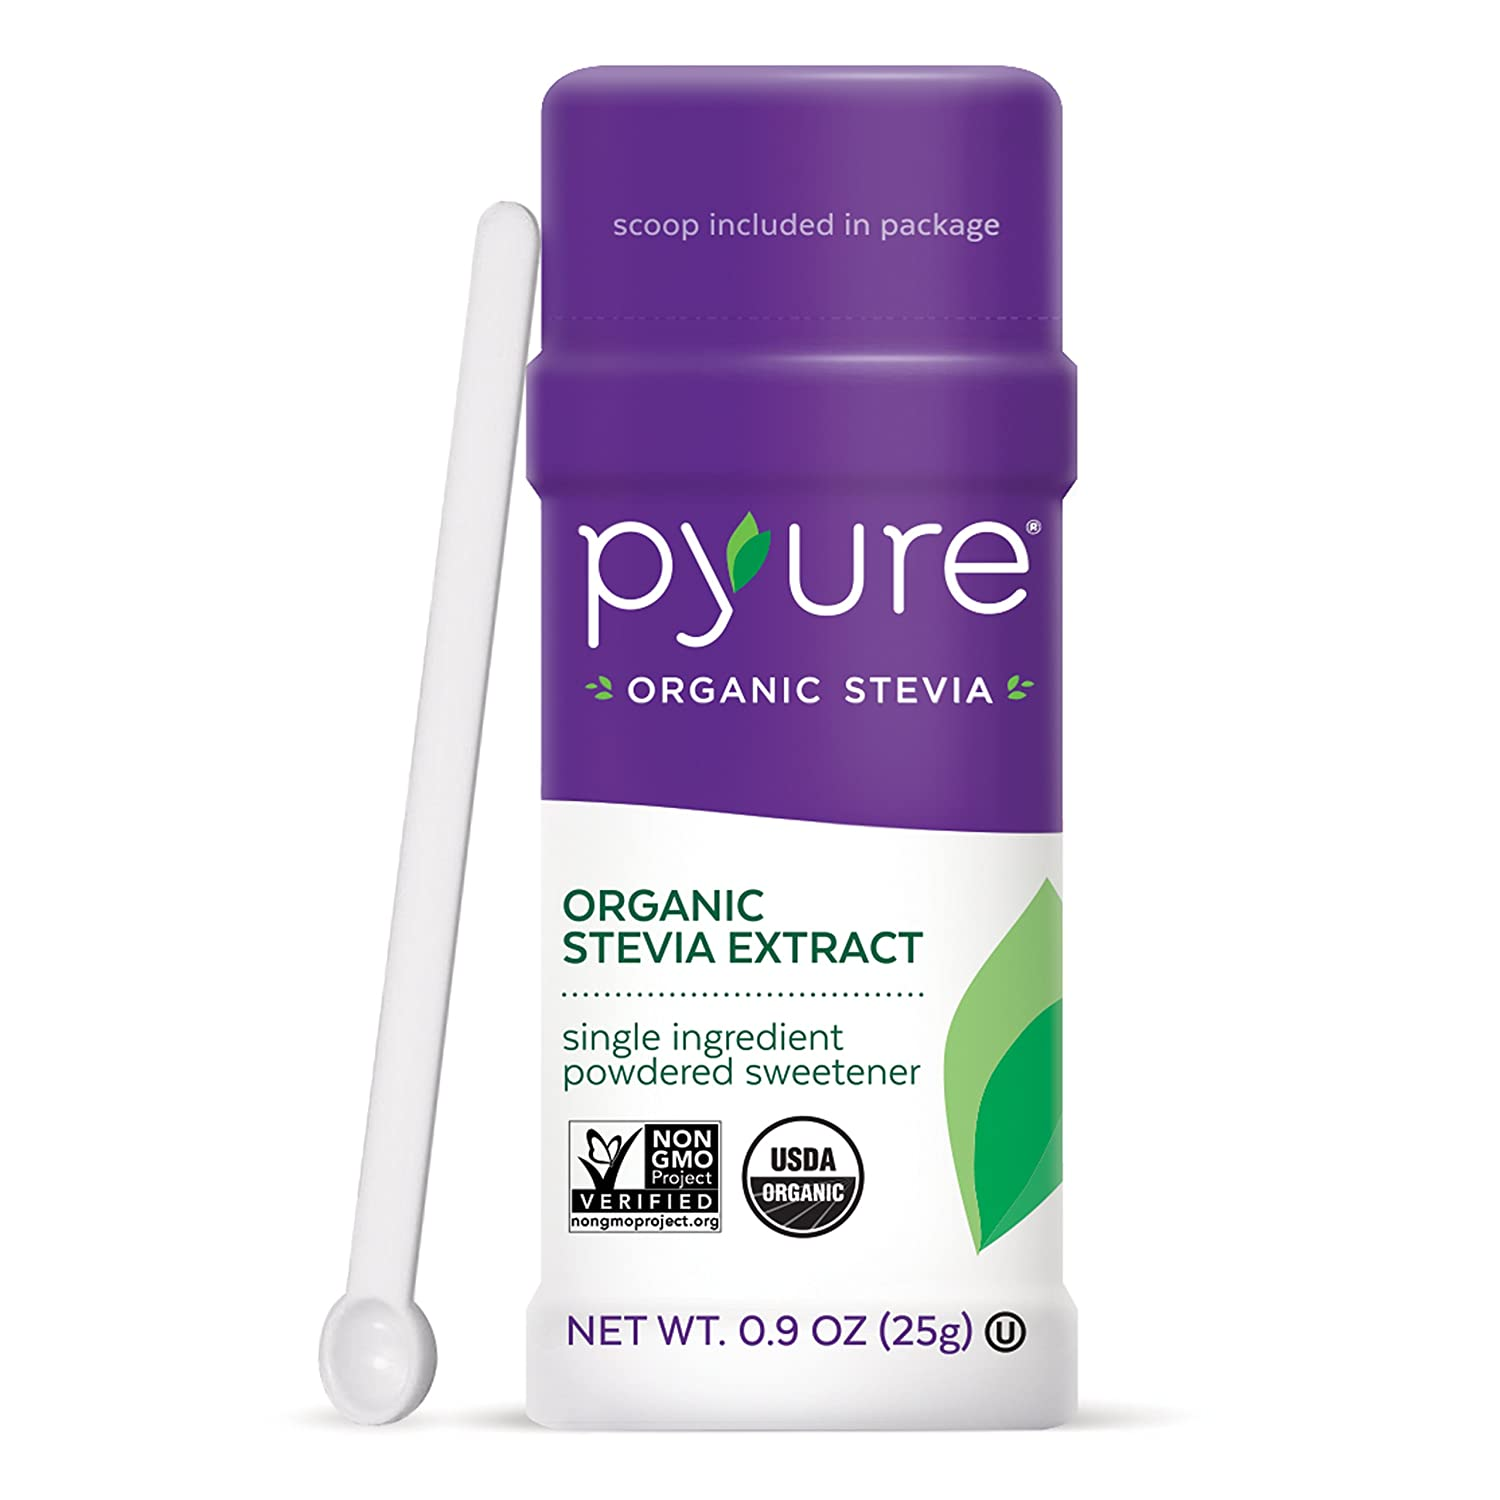 Pyure Organic Stevia Sweetener Extract Powder- 100% Stevia Leaf Extract, No Fillers, 300x Sweeter Than Sugar, 1,000 Servings, 0.9 Ounce